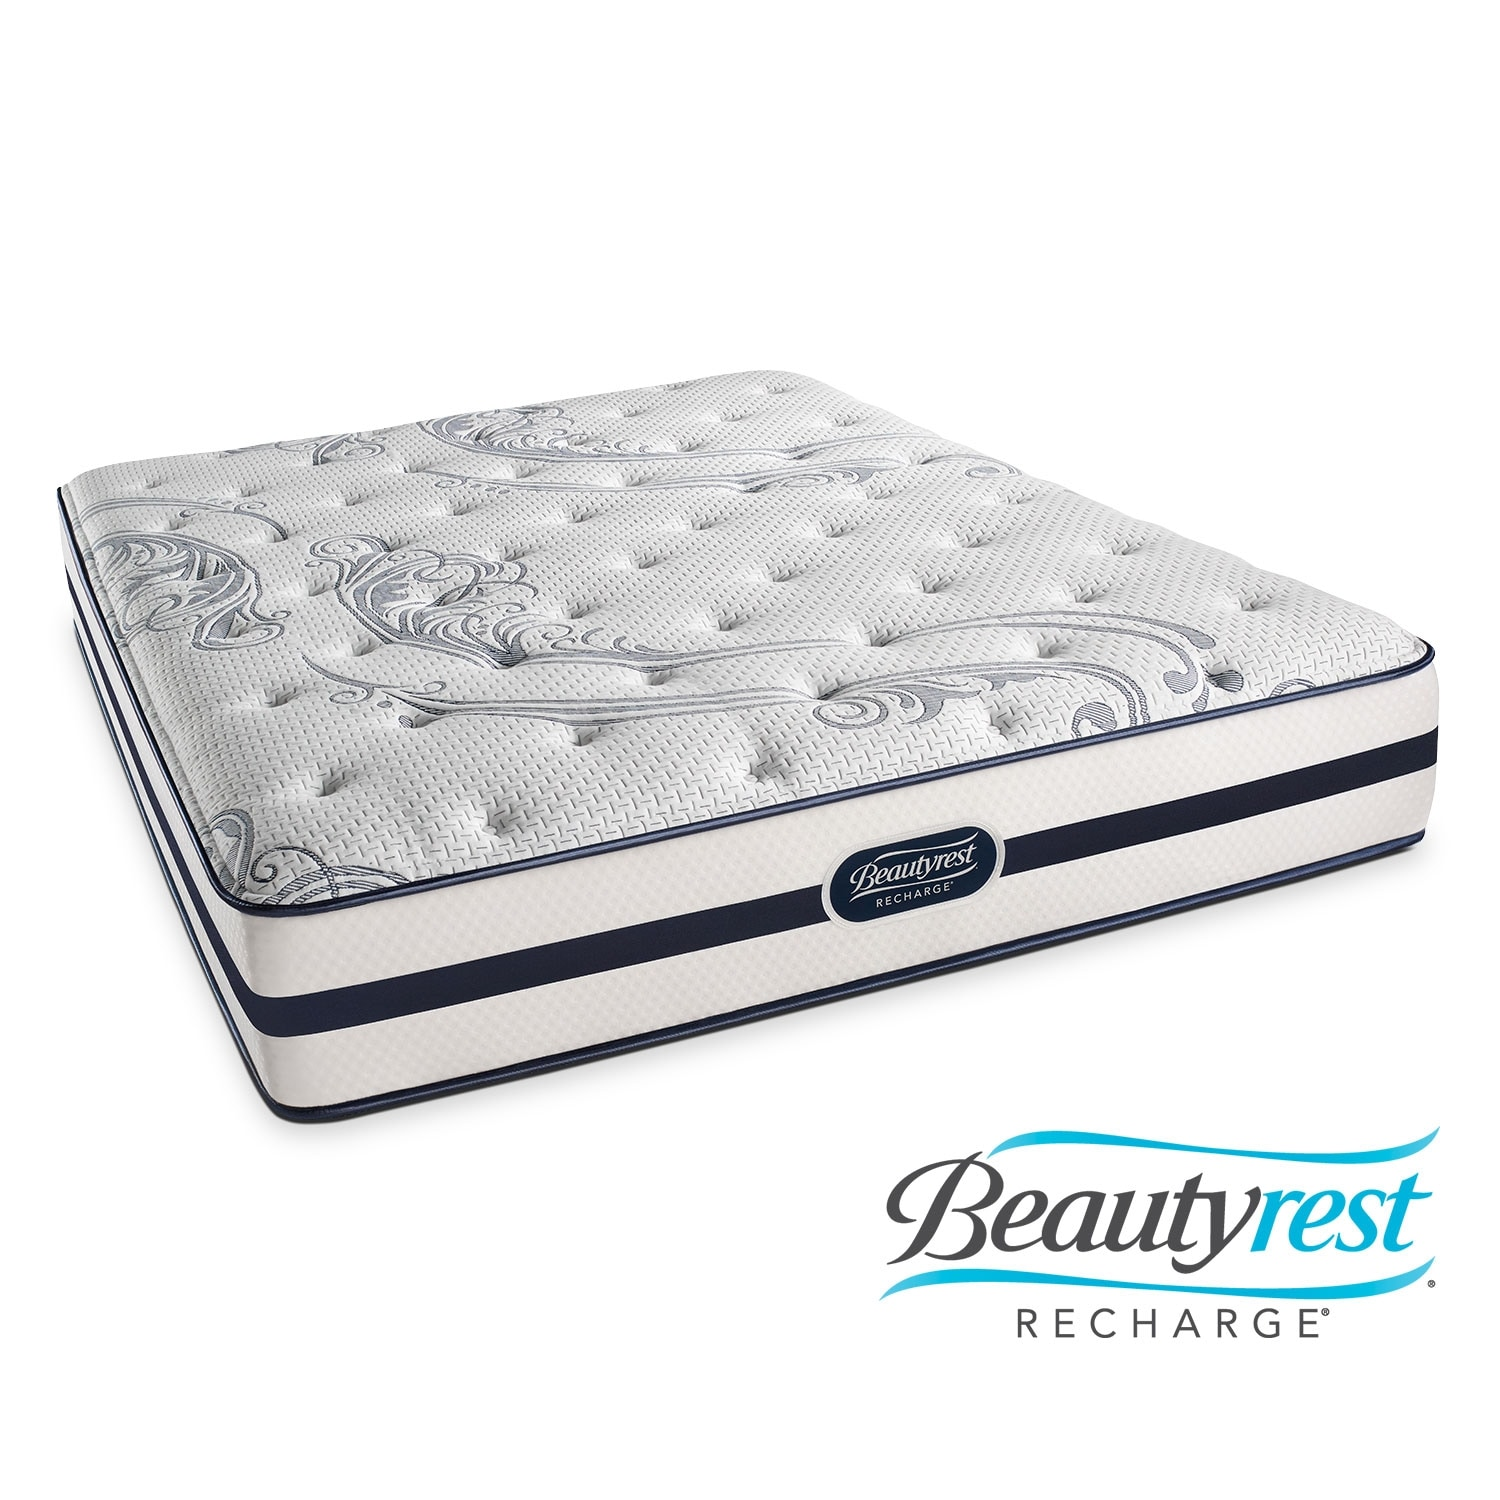 Mattresses and Bedding - Alisa Luxury Firm Twin XL Mattress